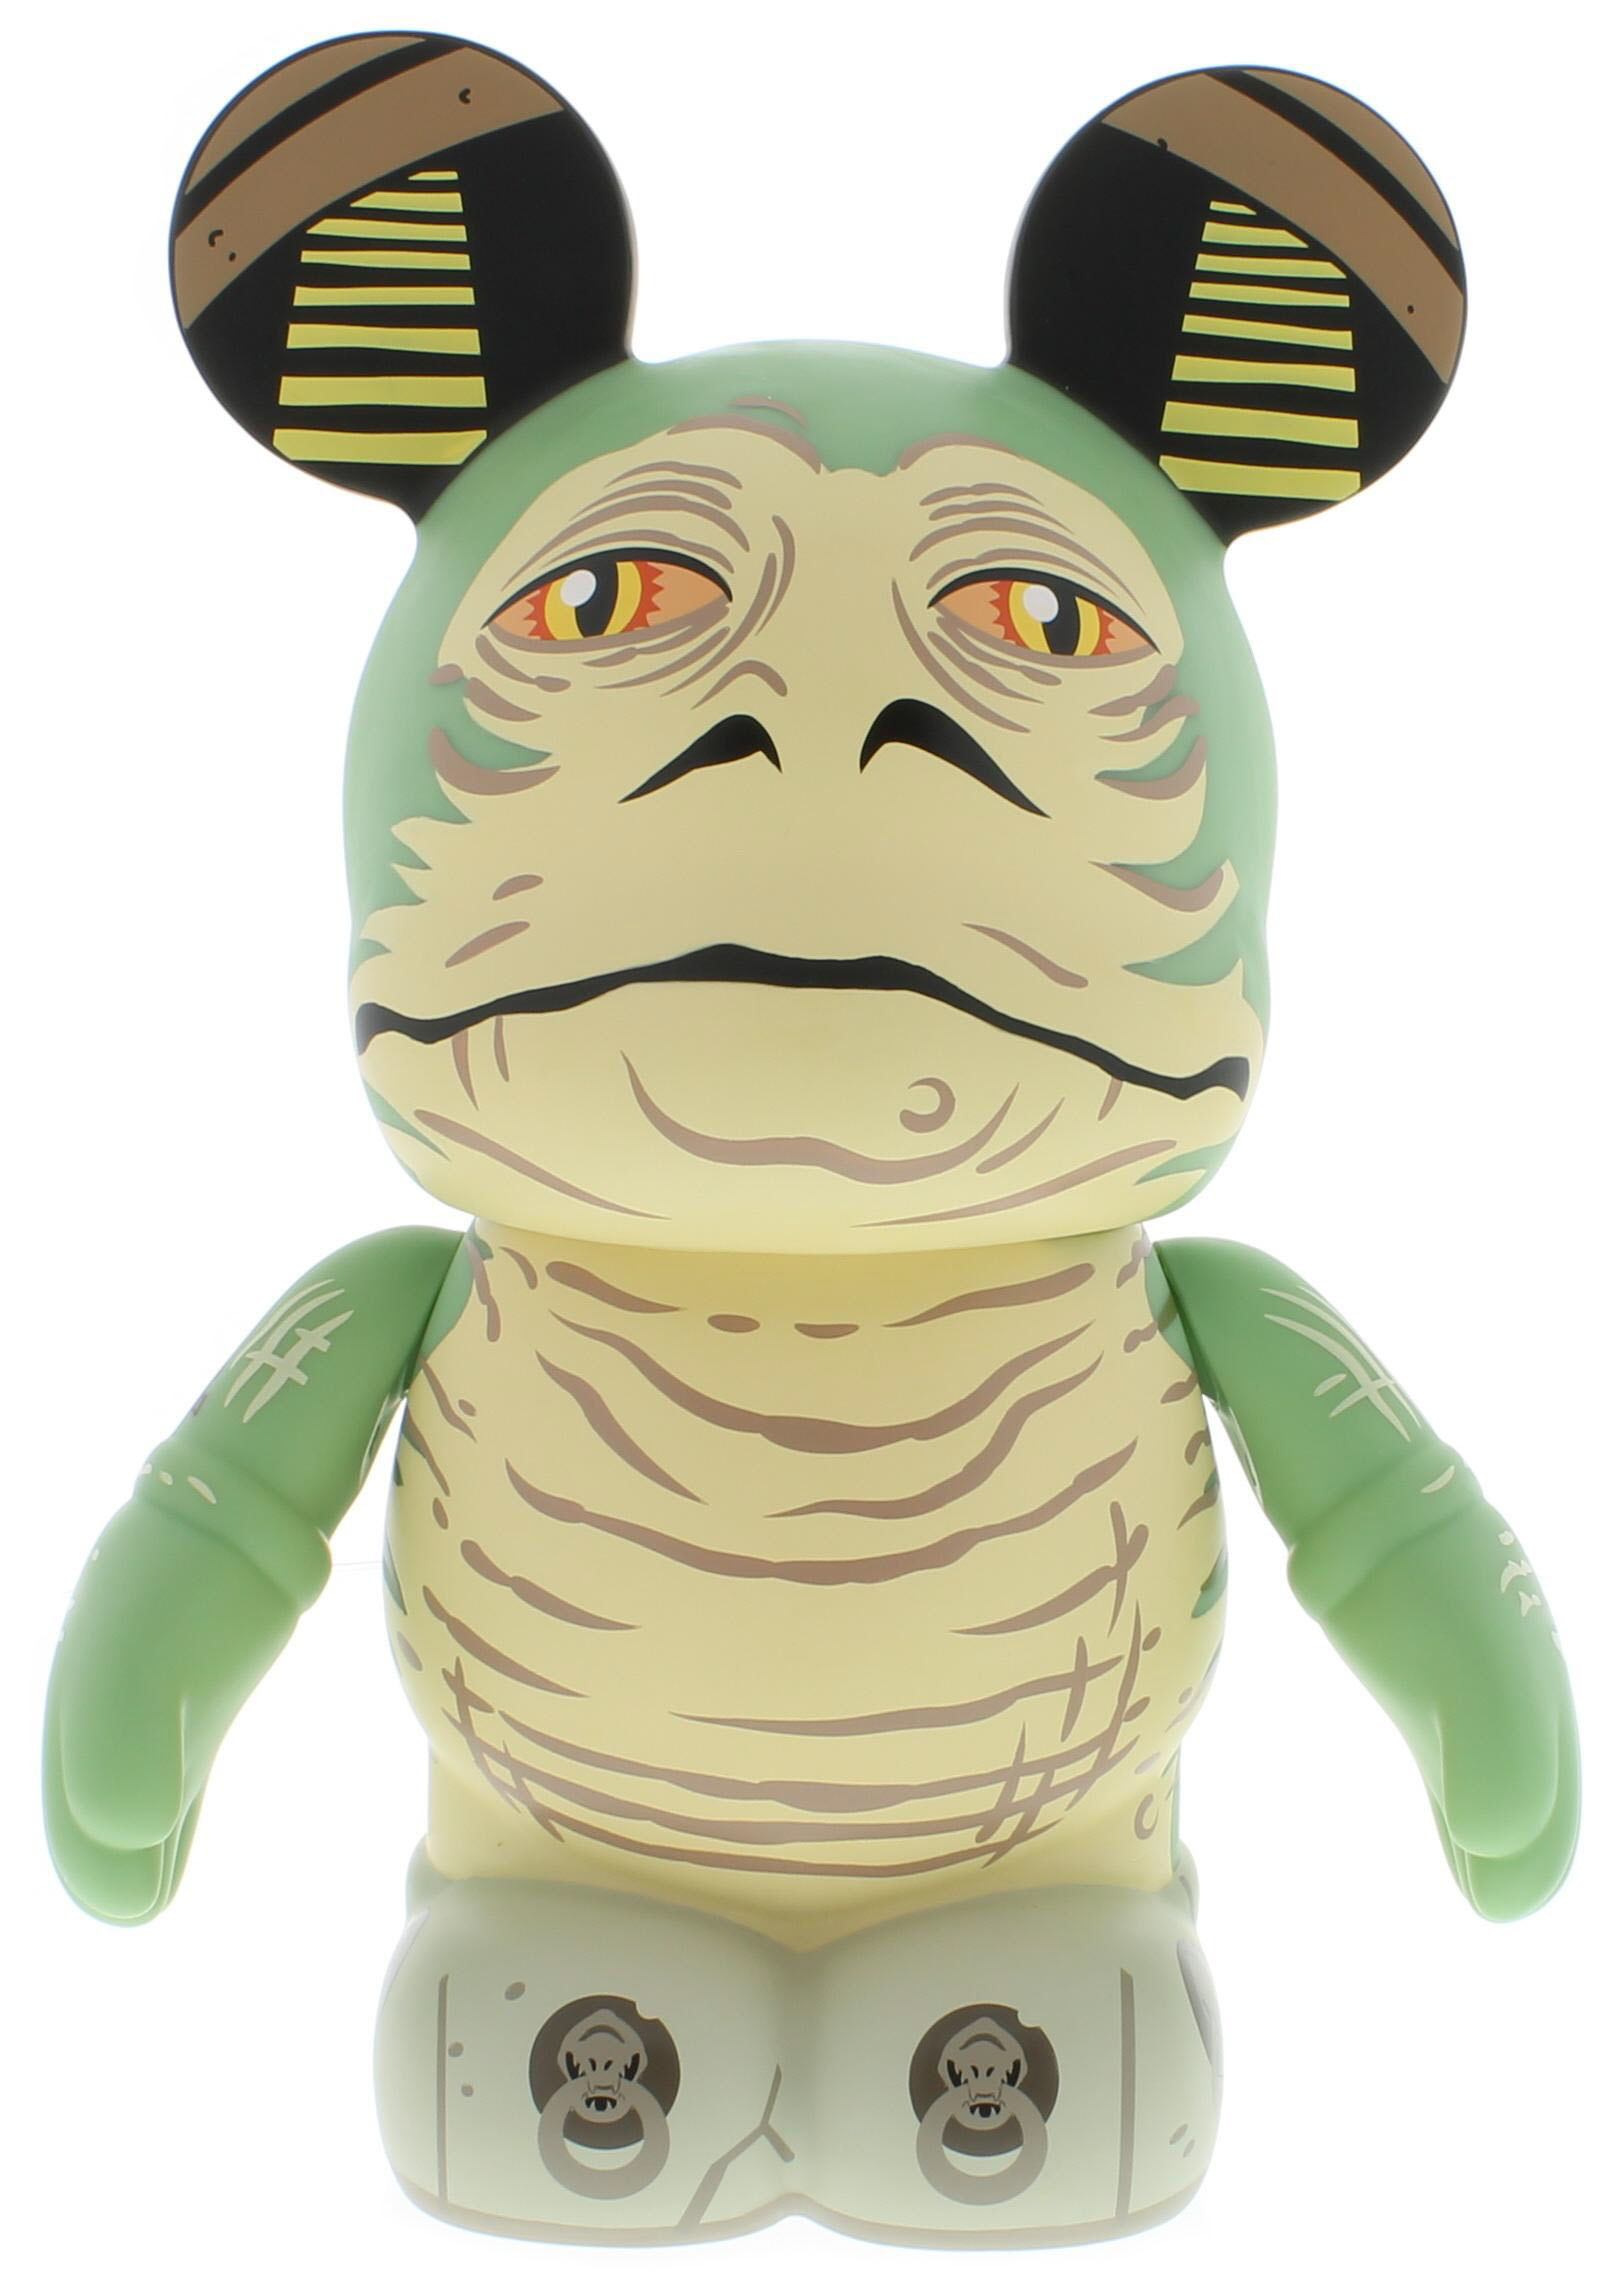 Vinylmation™ – Star Wars™ Series #3 – Jabba the Hutt & Salacious B. Crumb Set